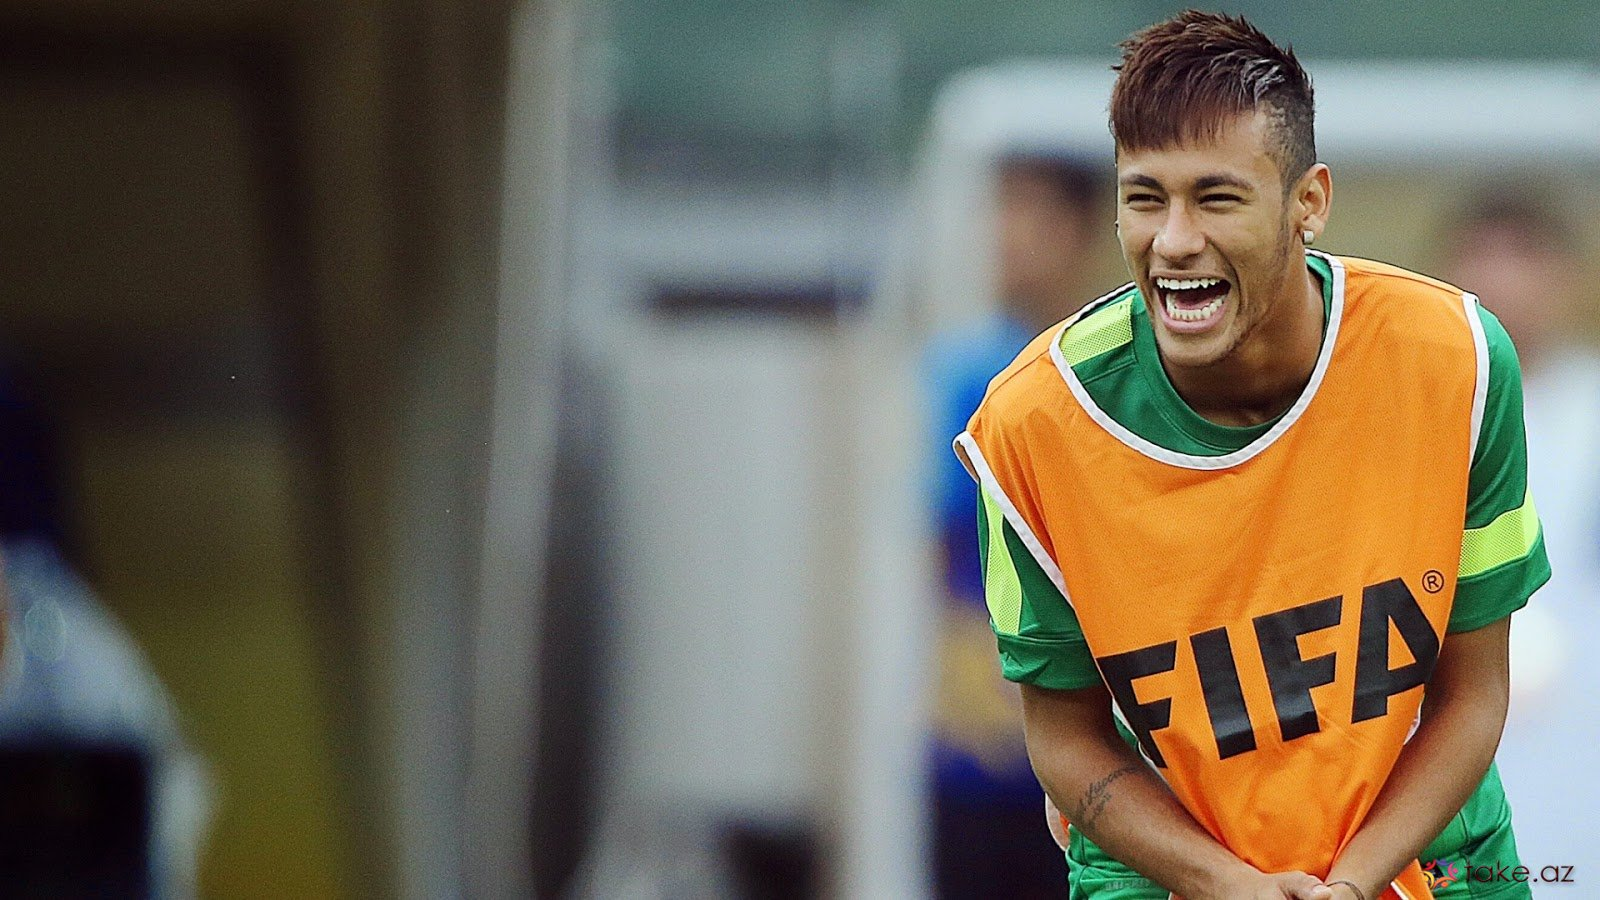 Neymar JR Photos 2015Neymar Jr Brazil 2014